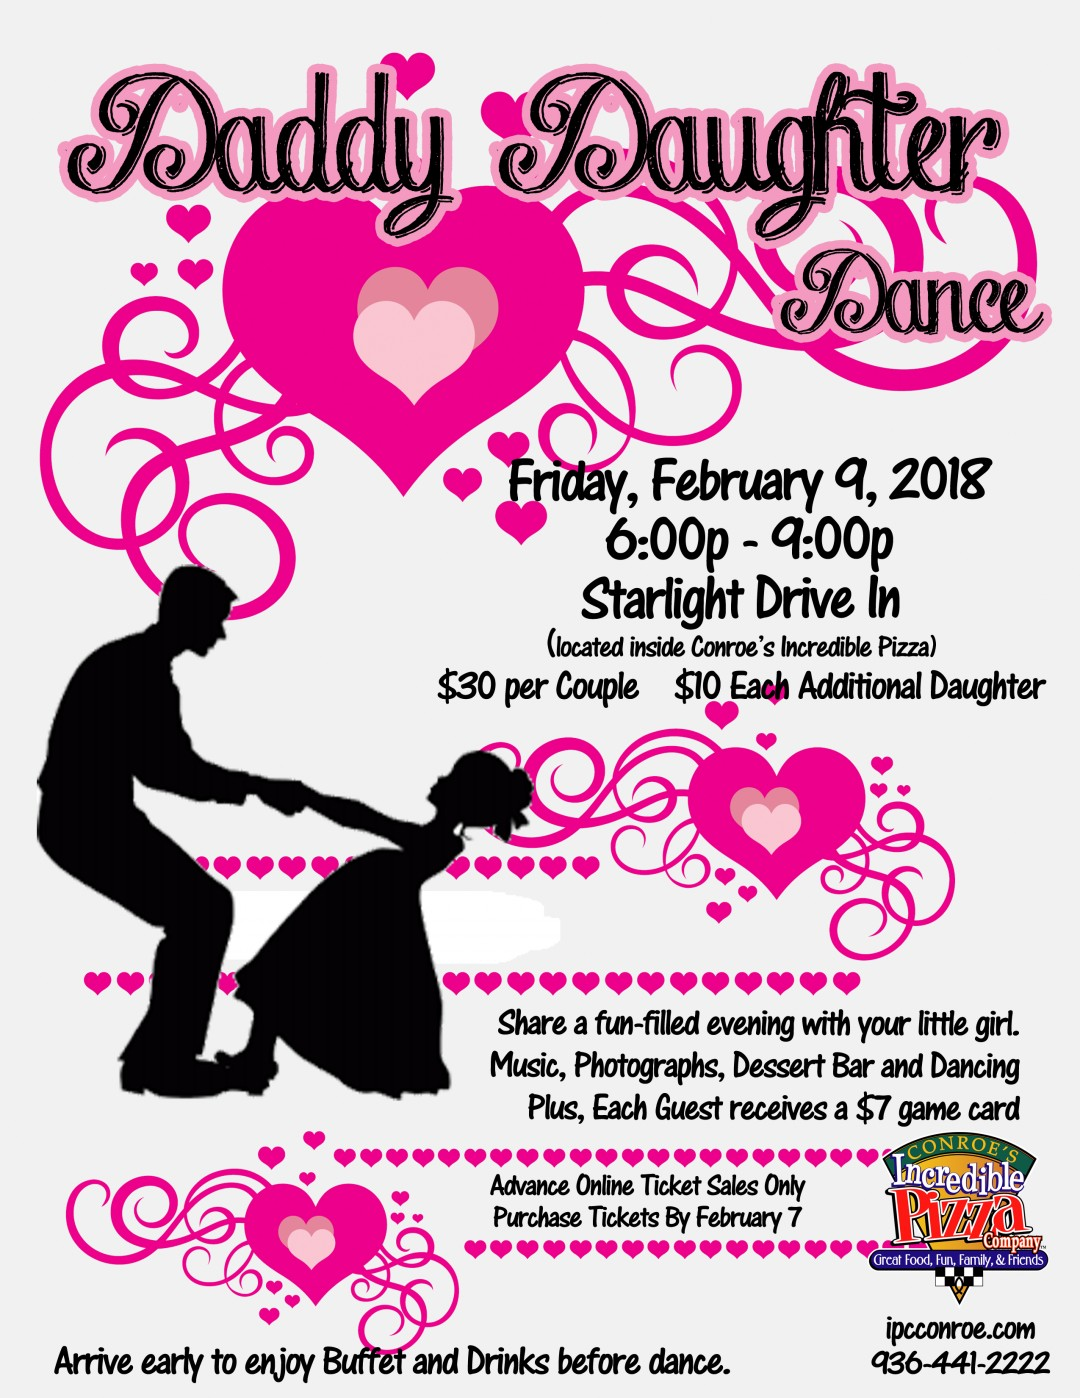 Daddy Daughter Dance – Fri., Feb. 9